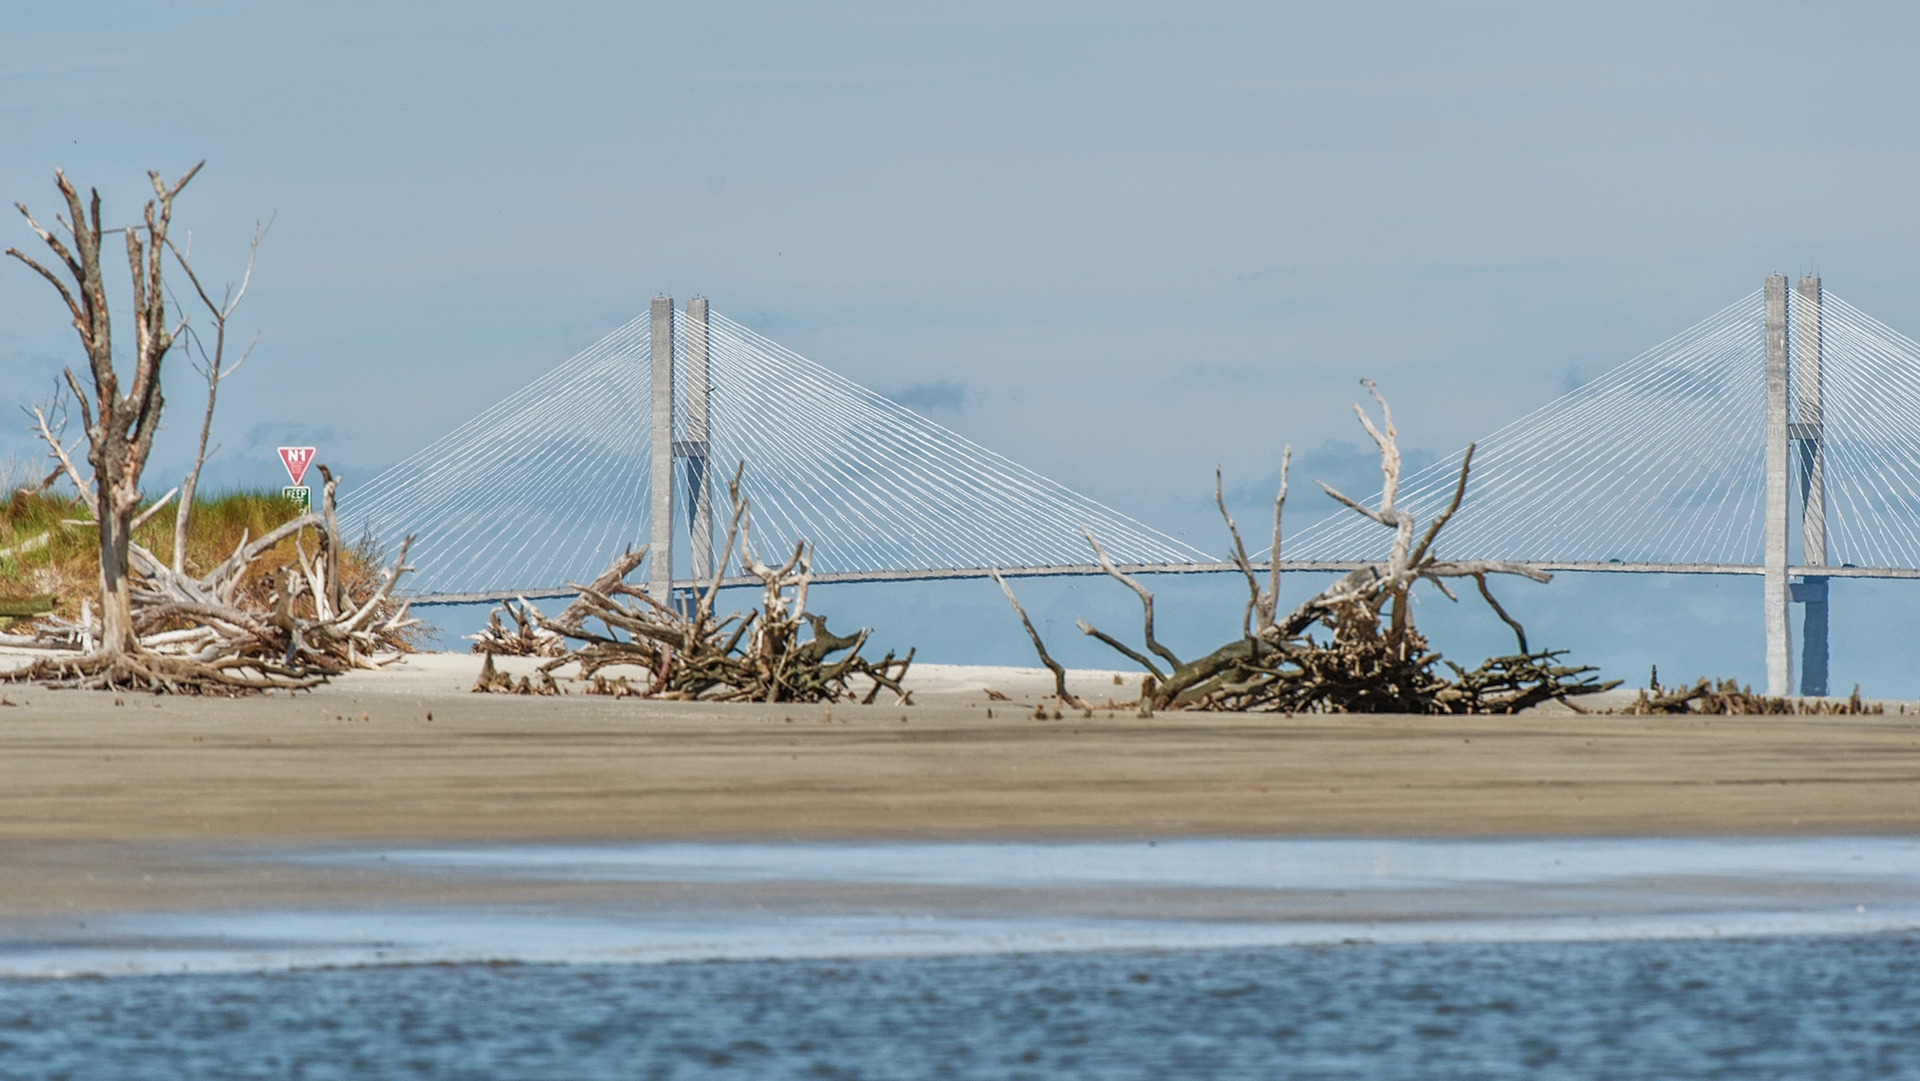 Driftwood beach and bridge